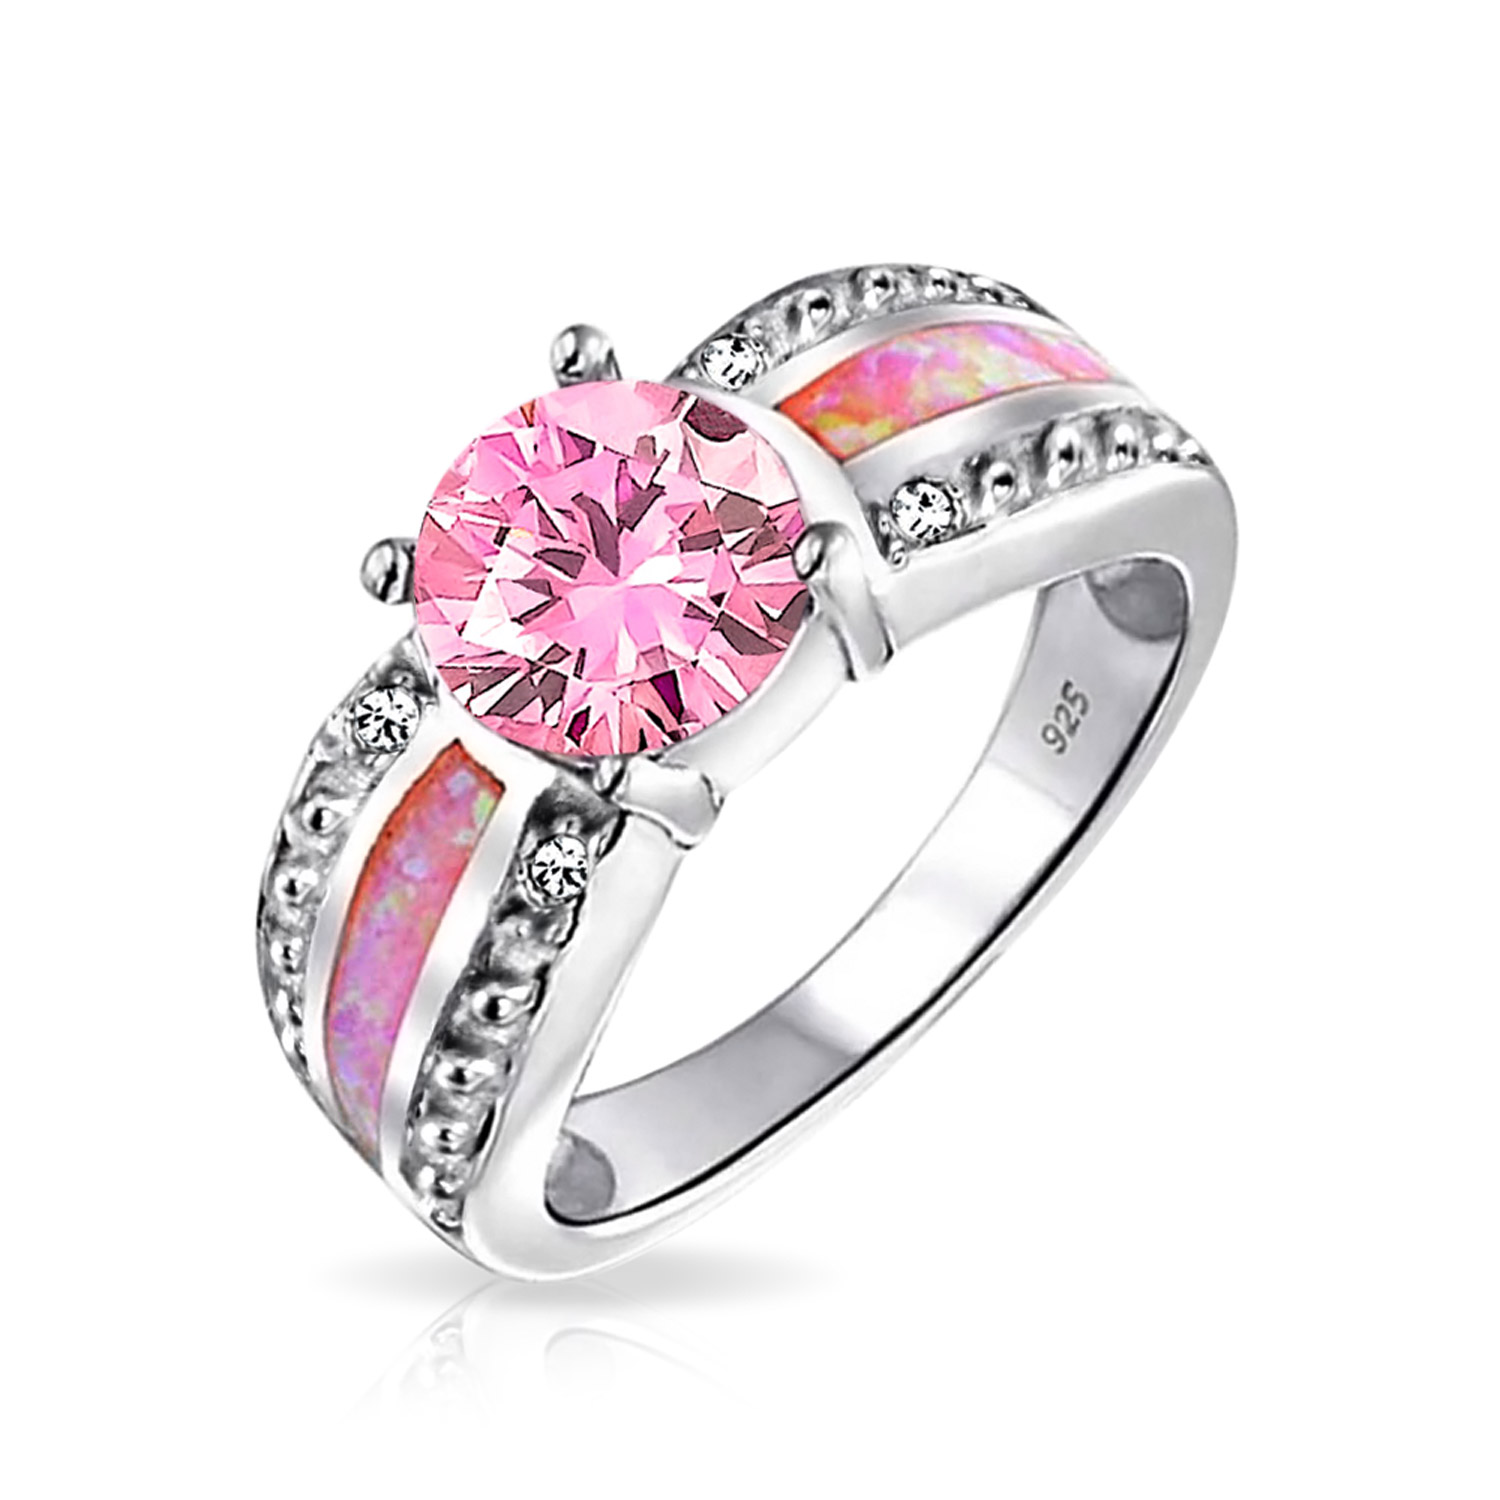 bling jewelry pink synthetic opal inlay october birthstone